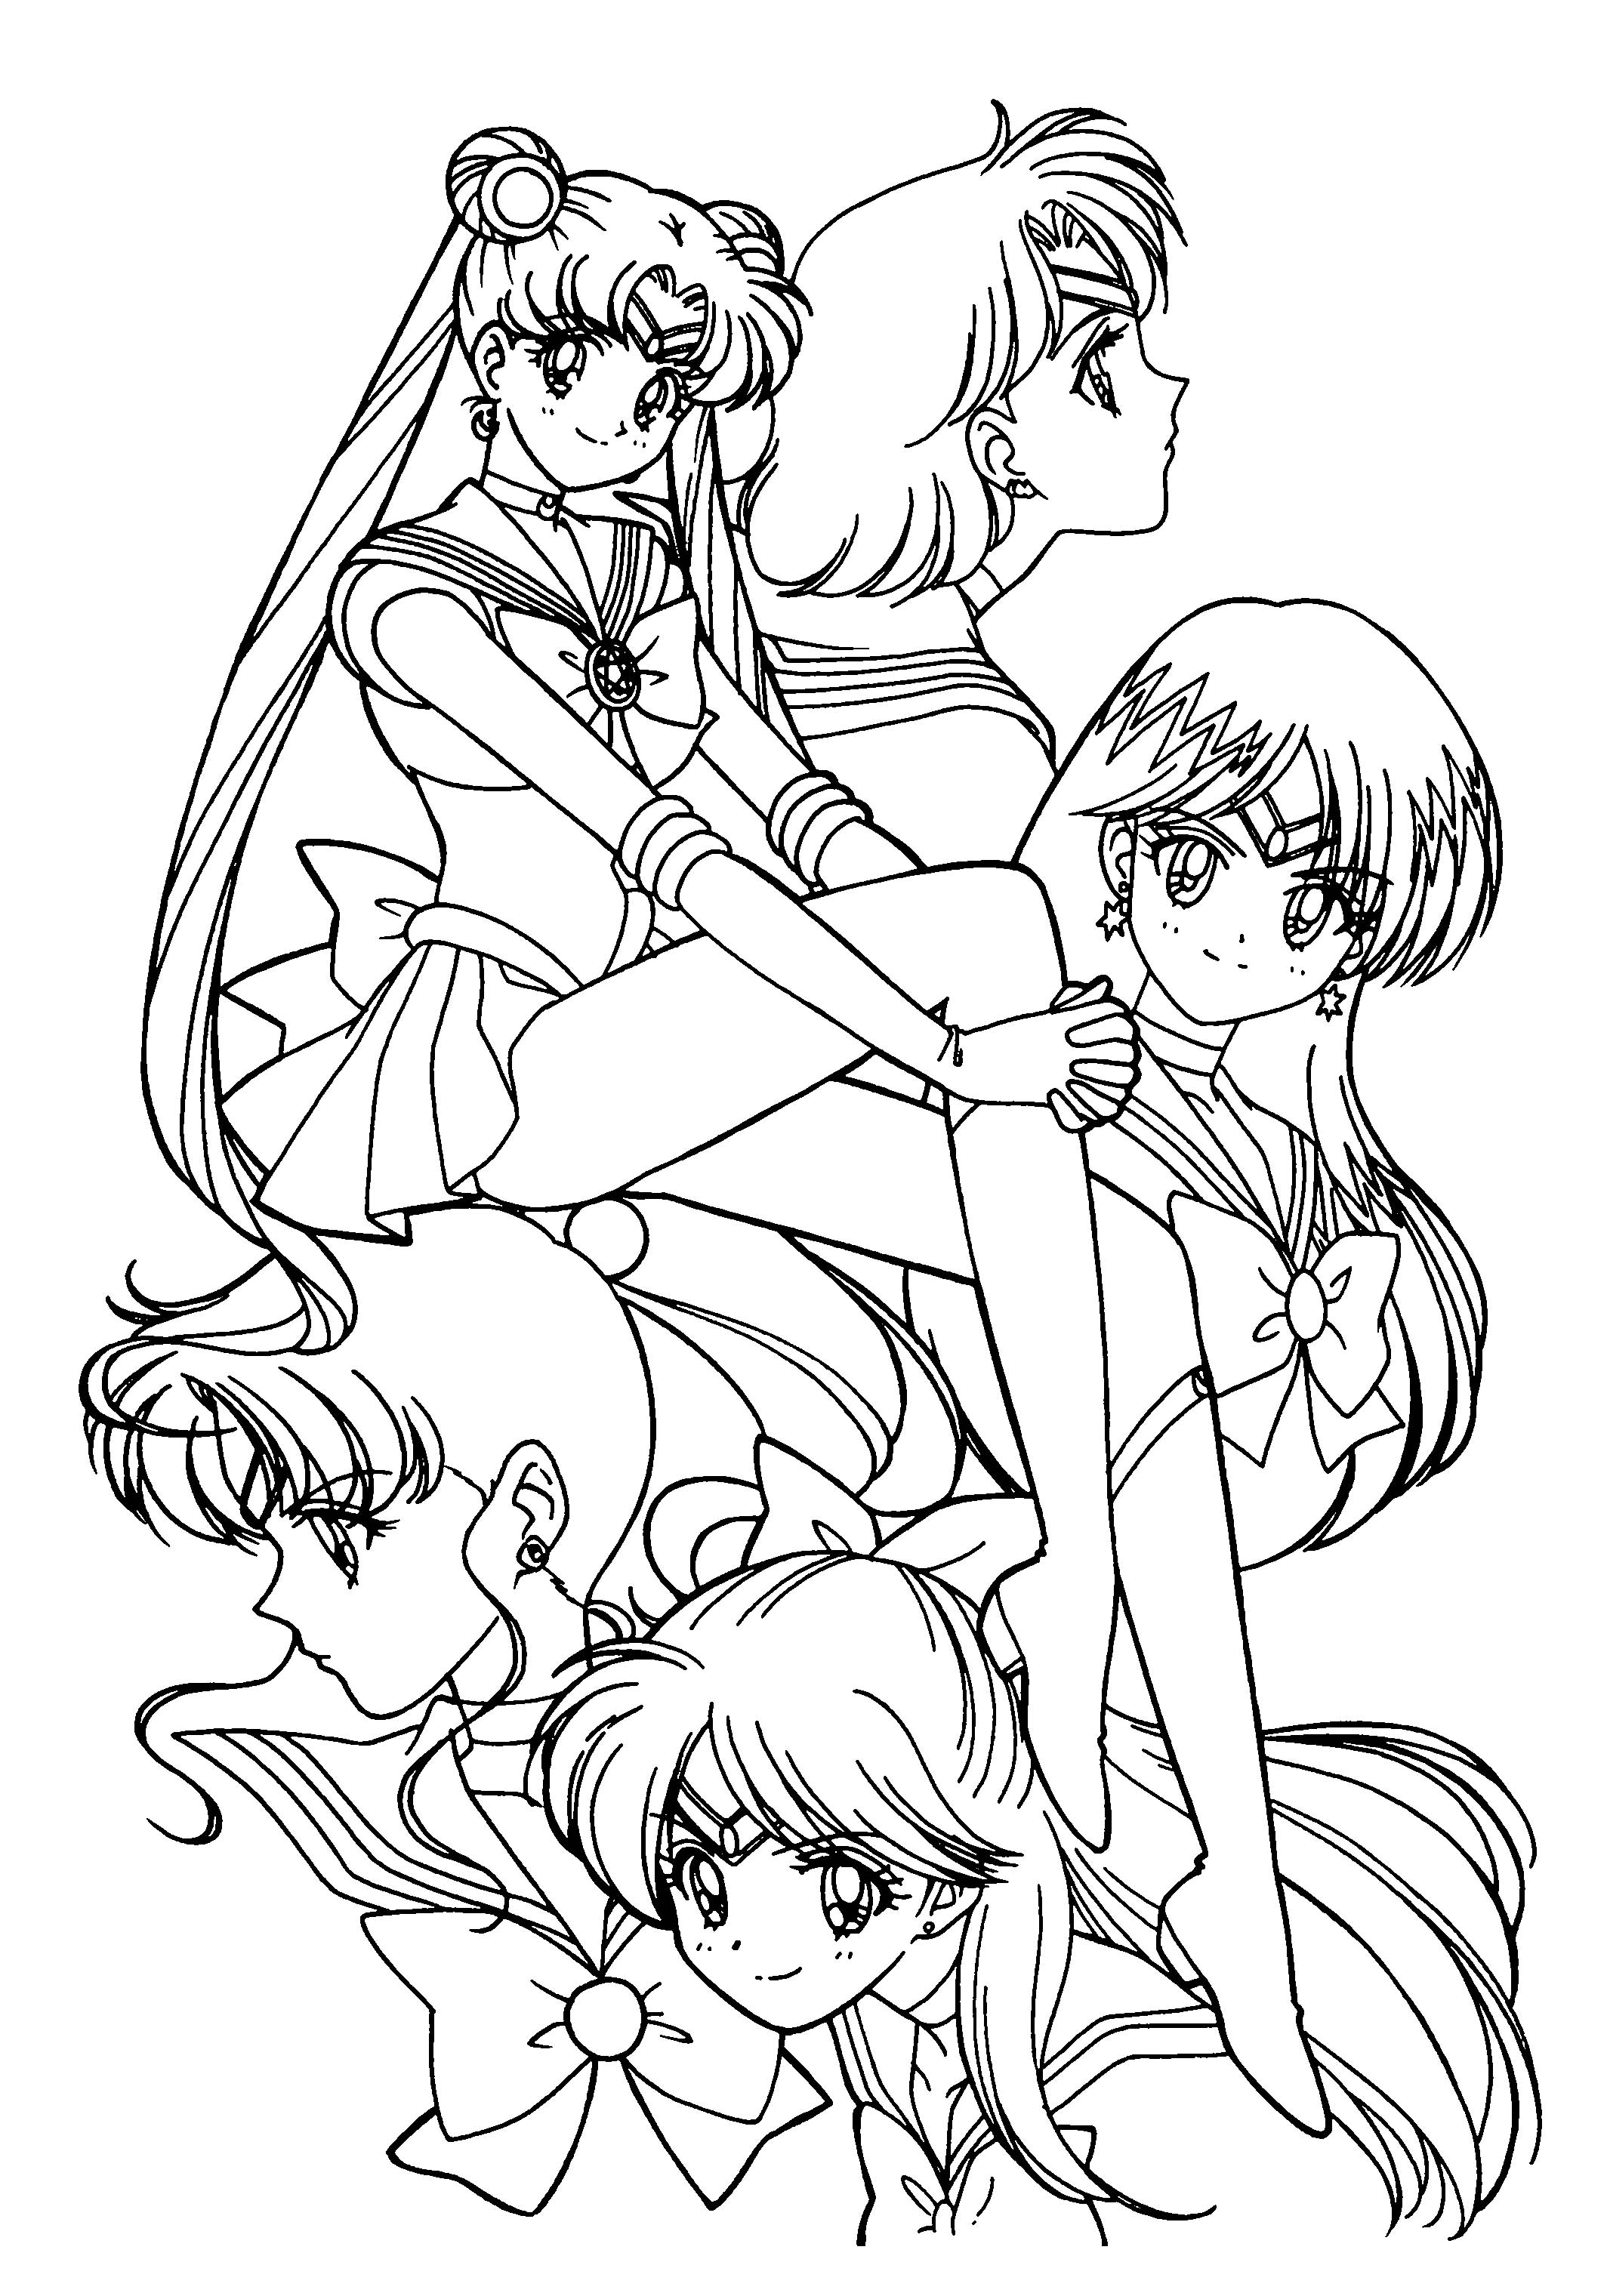 sailor moon coloring book coloring pages sailor moon animated images gifs book moon coloring sailor